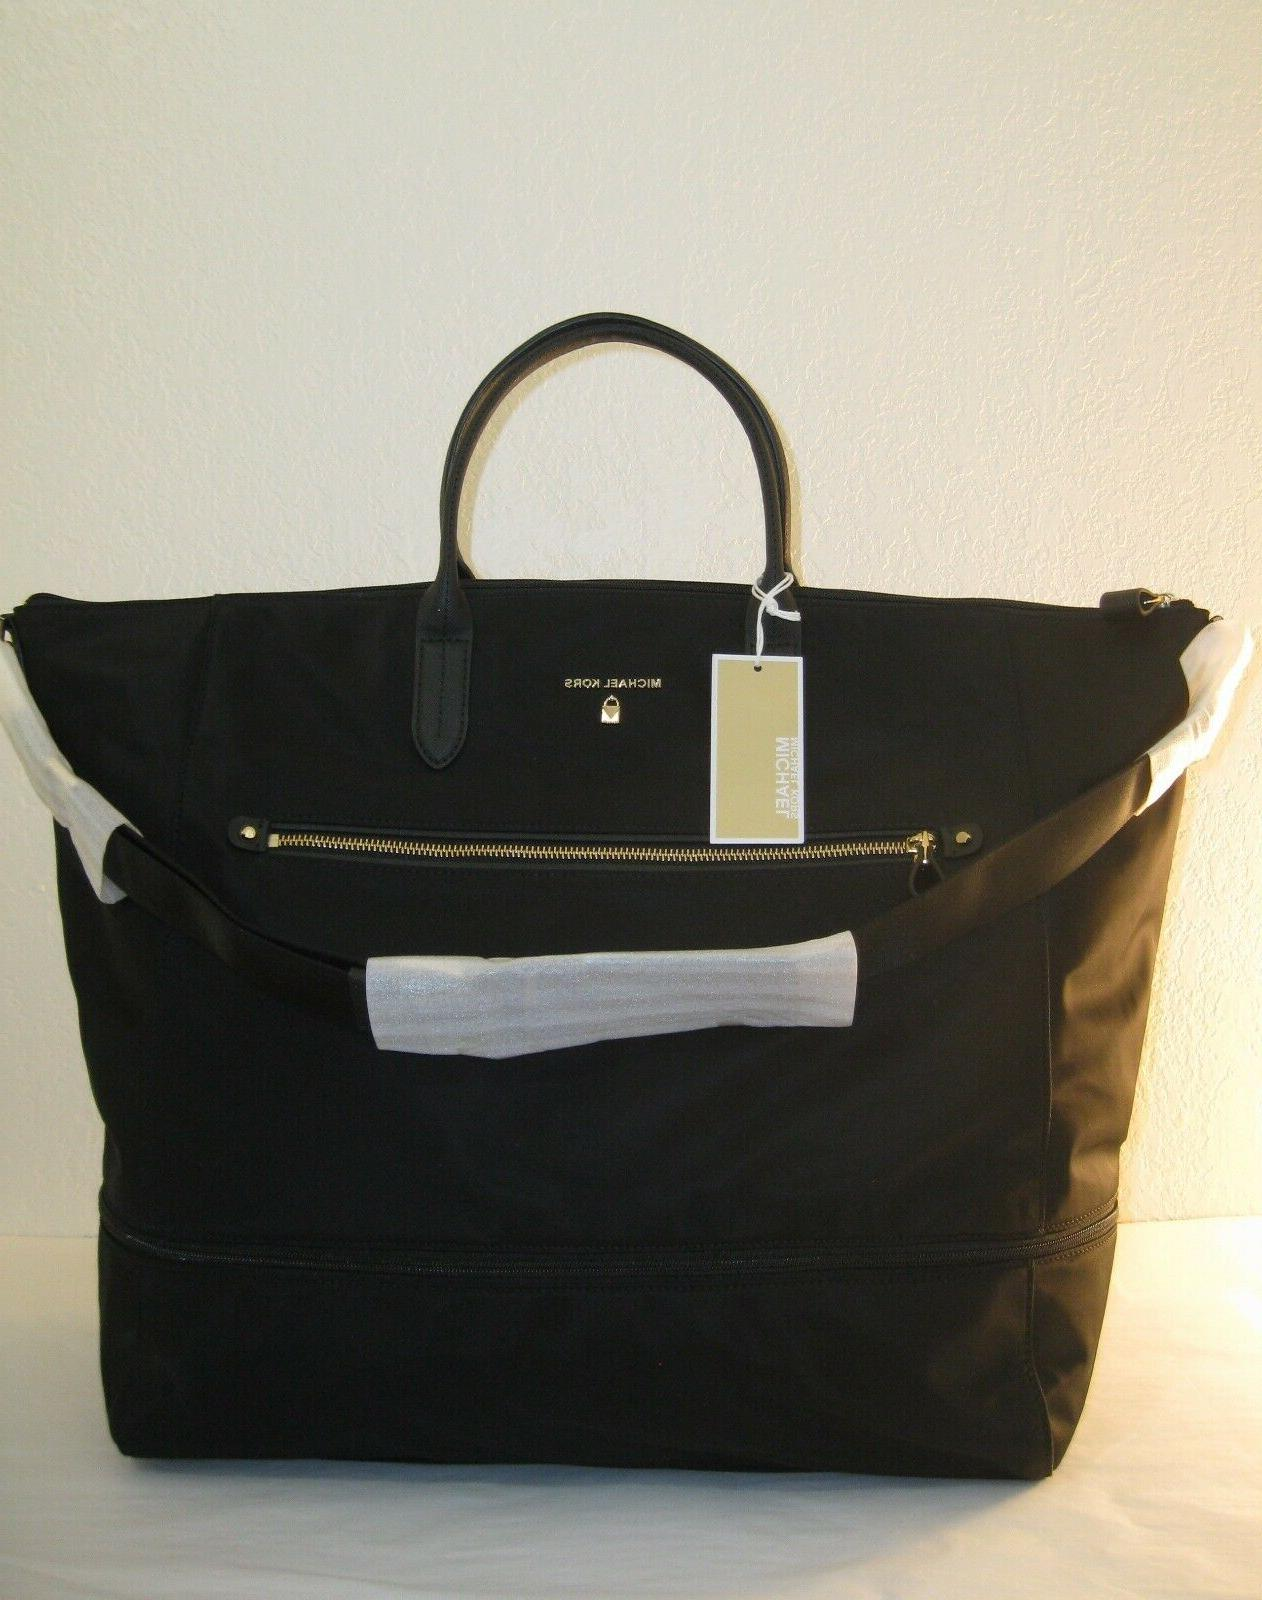 black nylon kelsey xlarge expandable travel tote